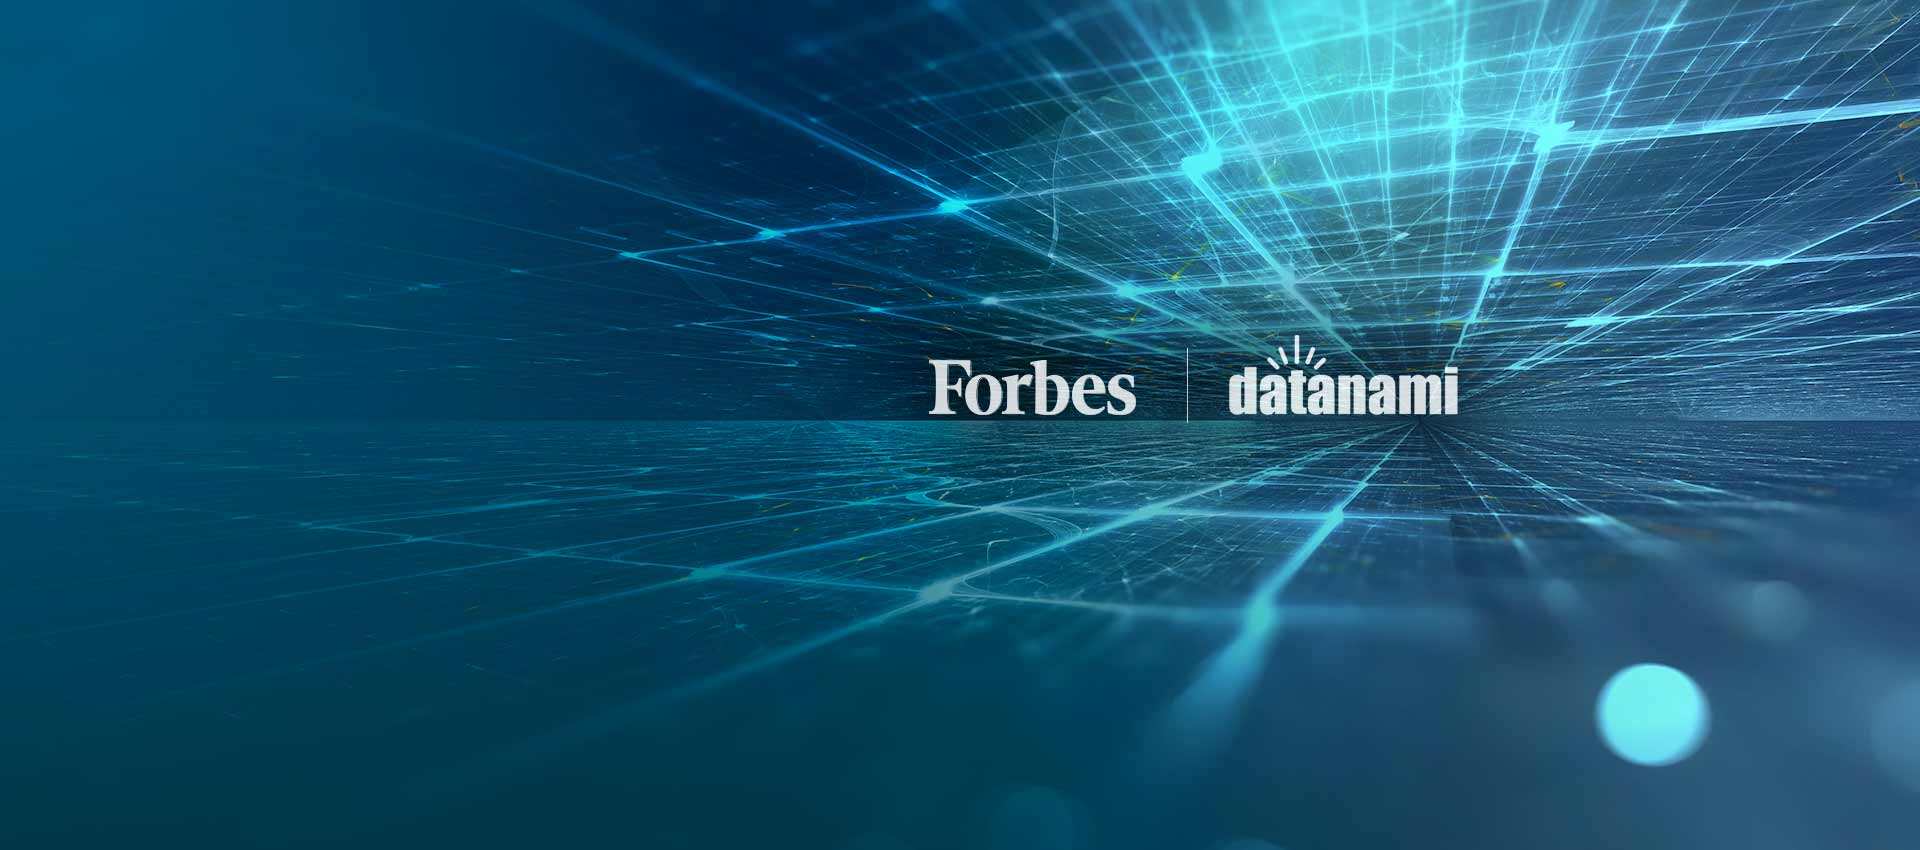 C3.ai - C3.ai awarded Forbes Cloud 100 and Datanami honors